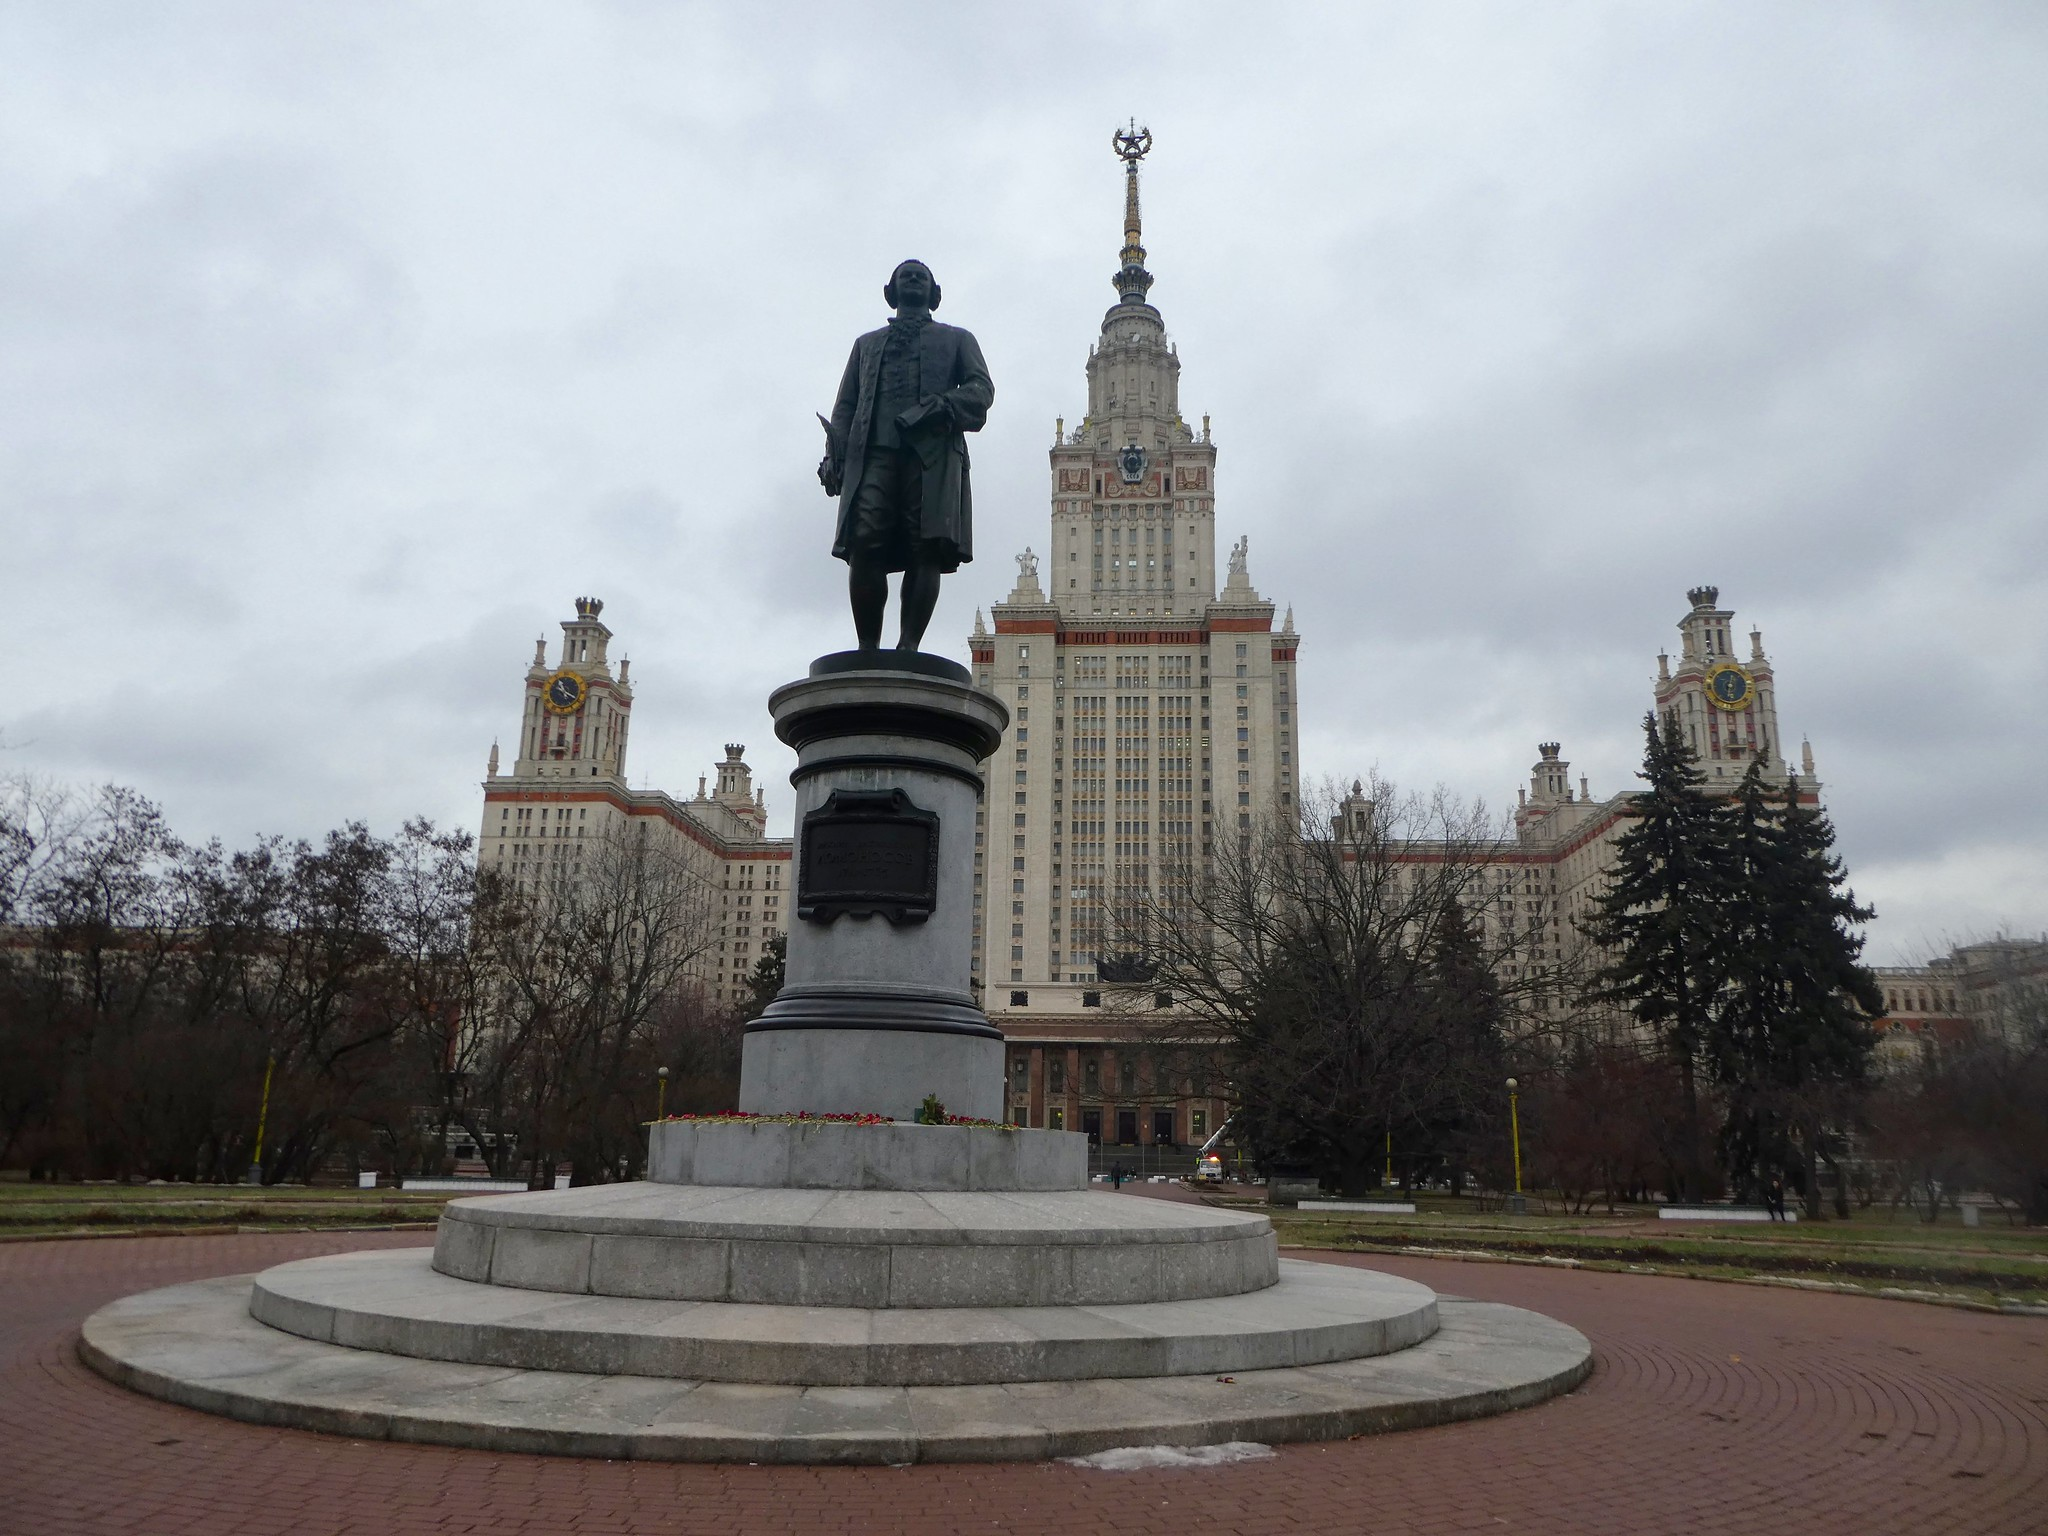 Statue of Mikhail Lomonosov in front of Moscow State University